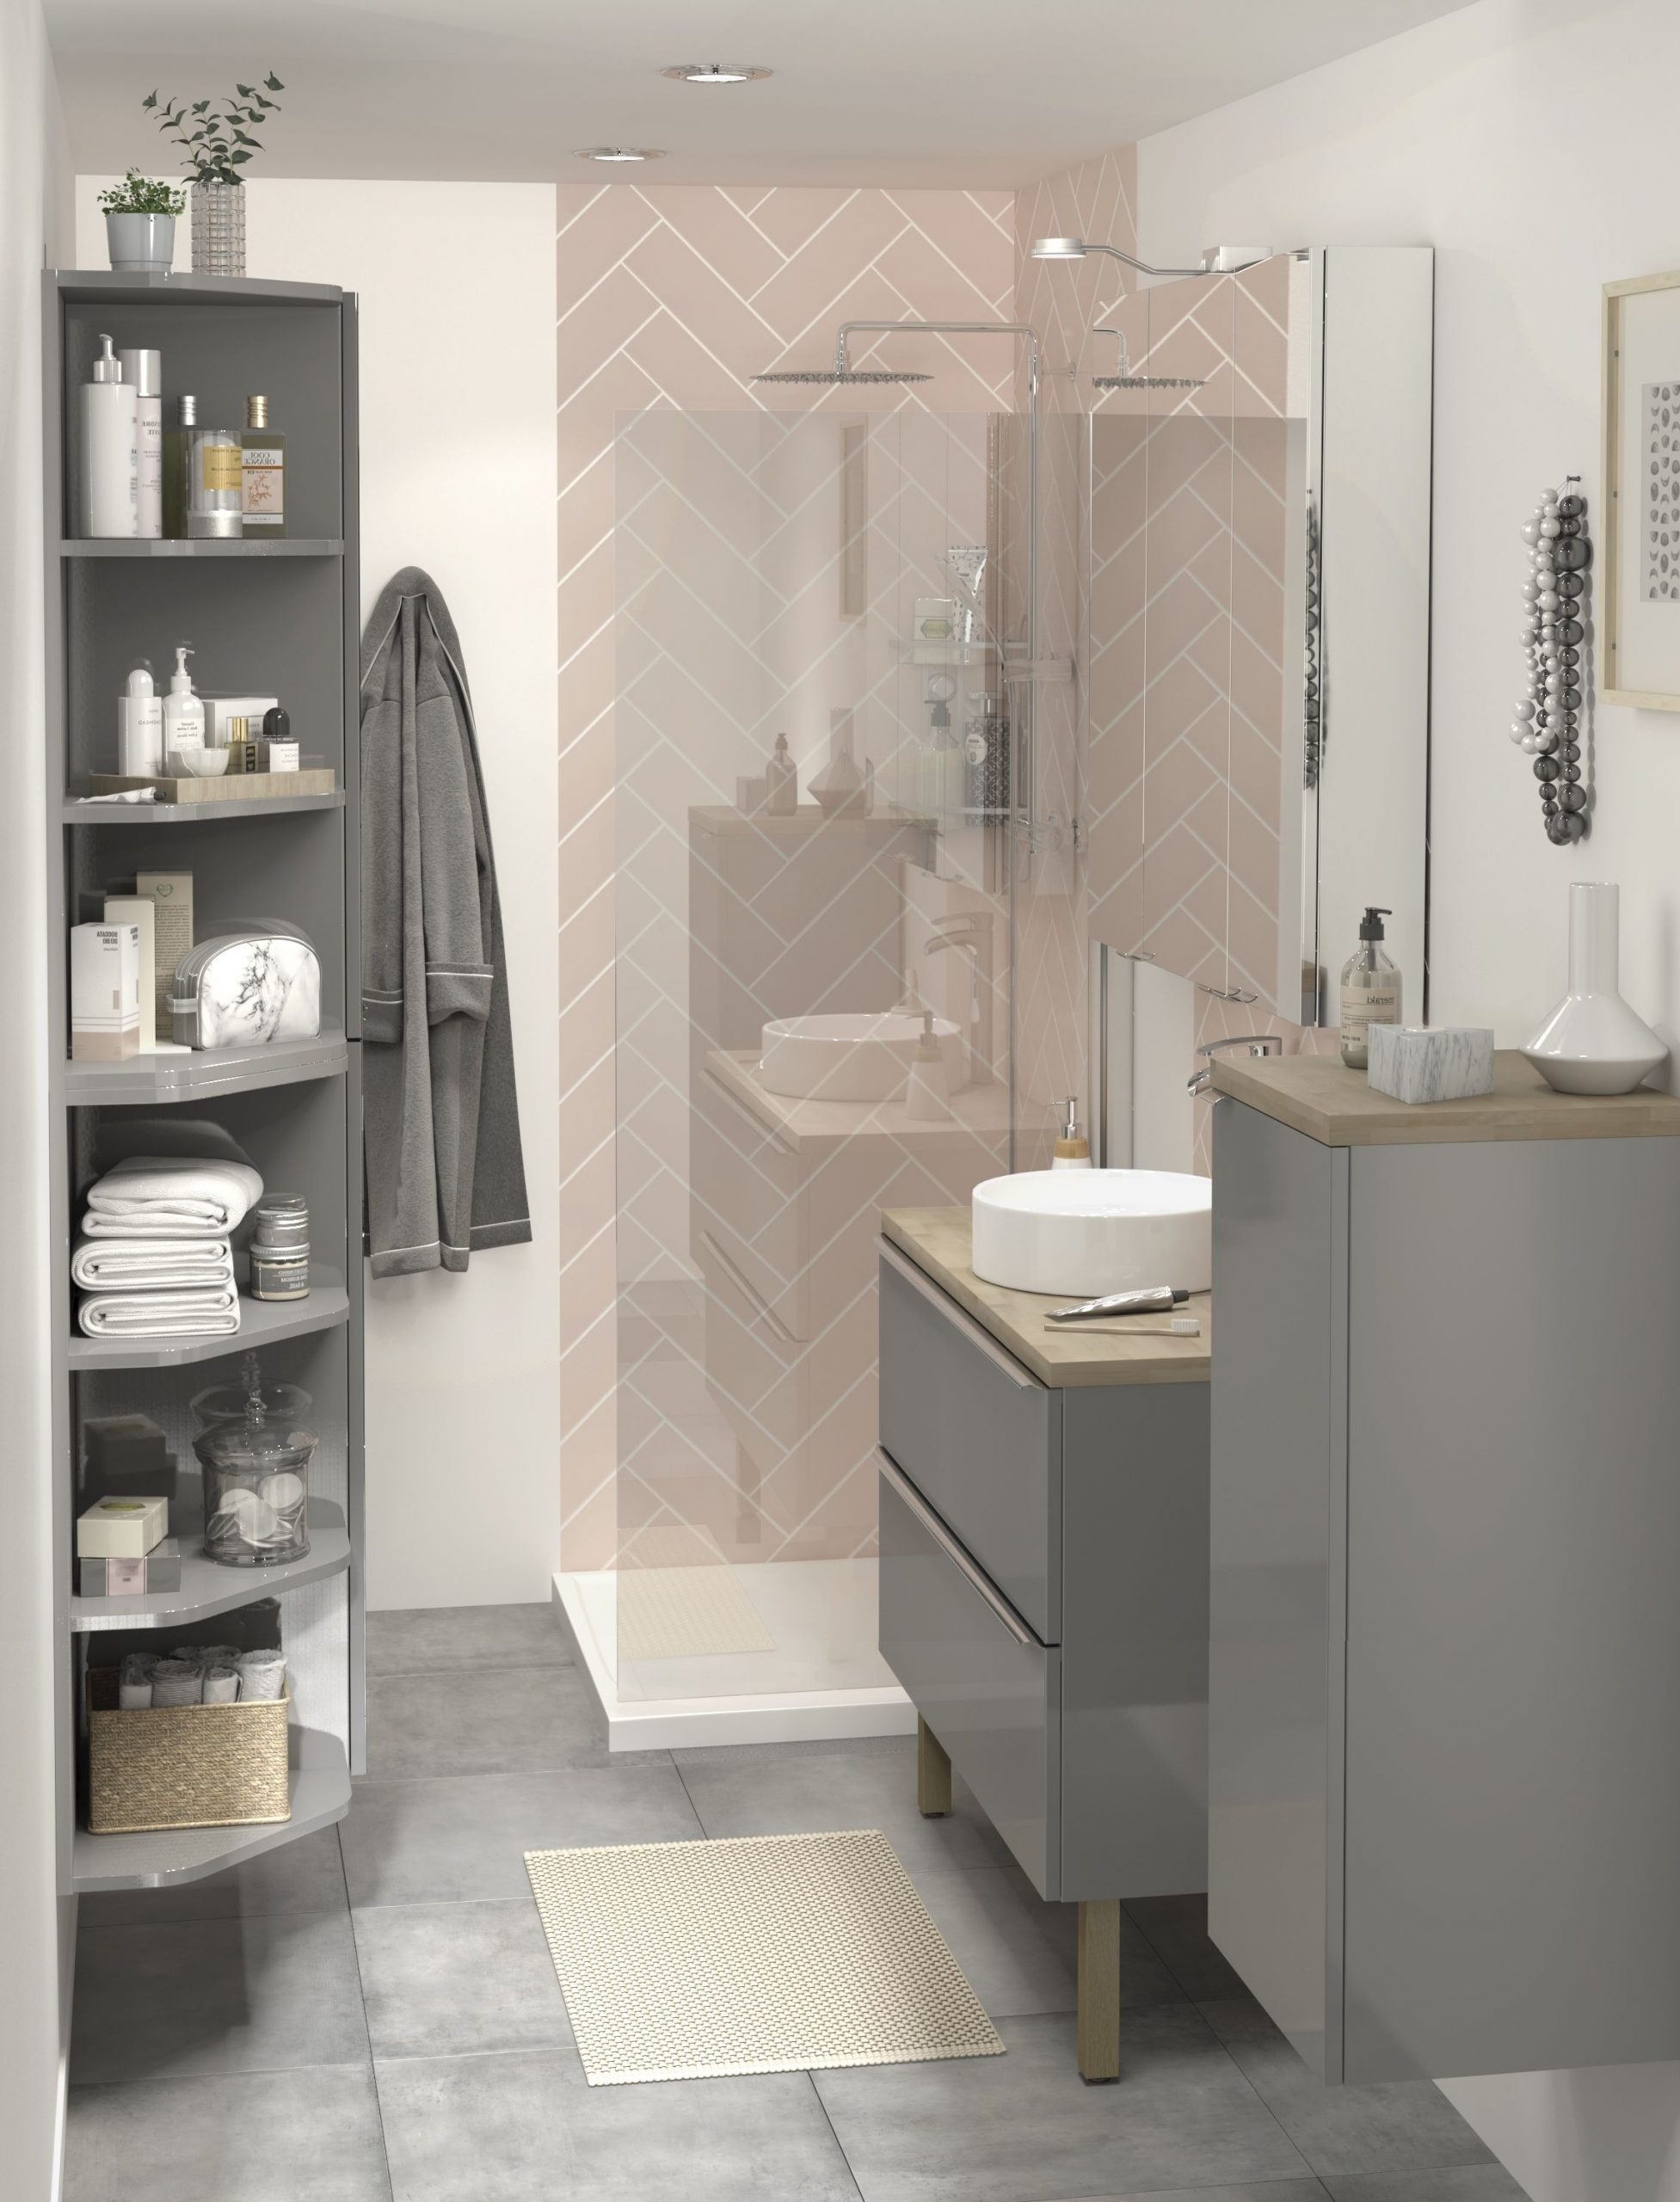 The Imandra Bathroom Collection From B&Q Not Only Comes In A B&Q Bathroom Design Service